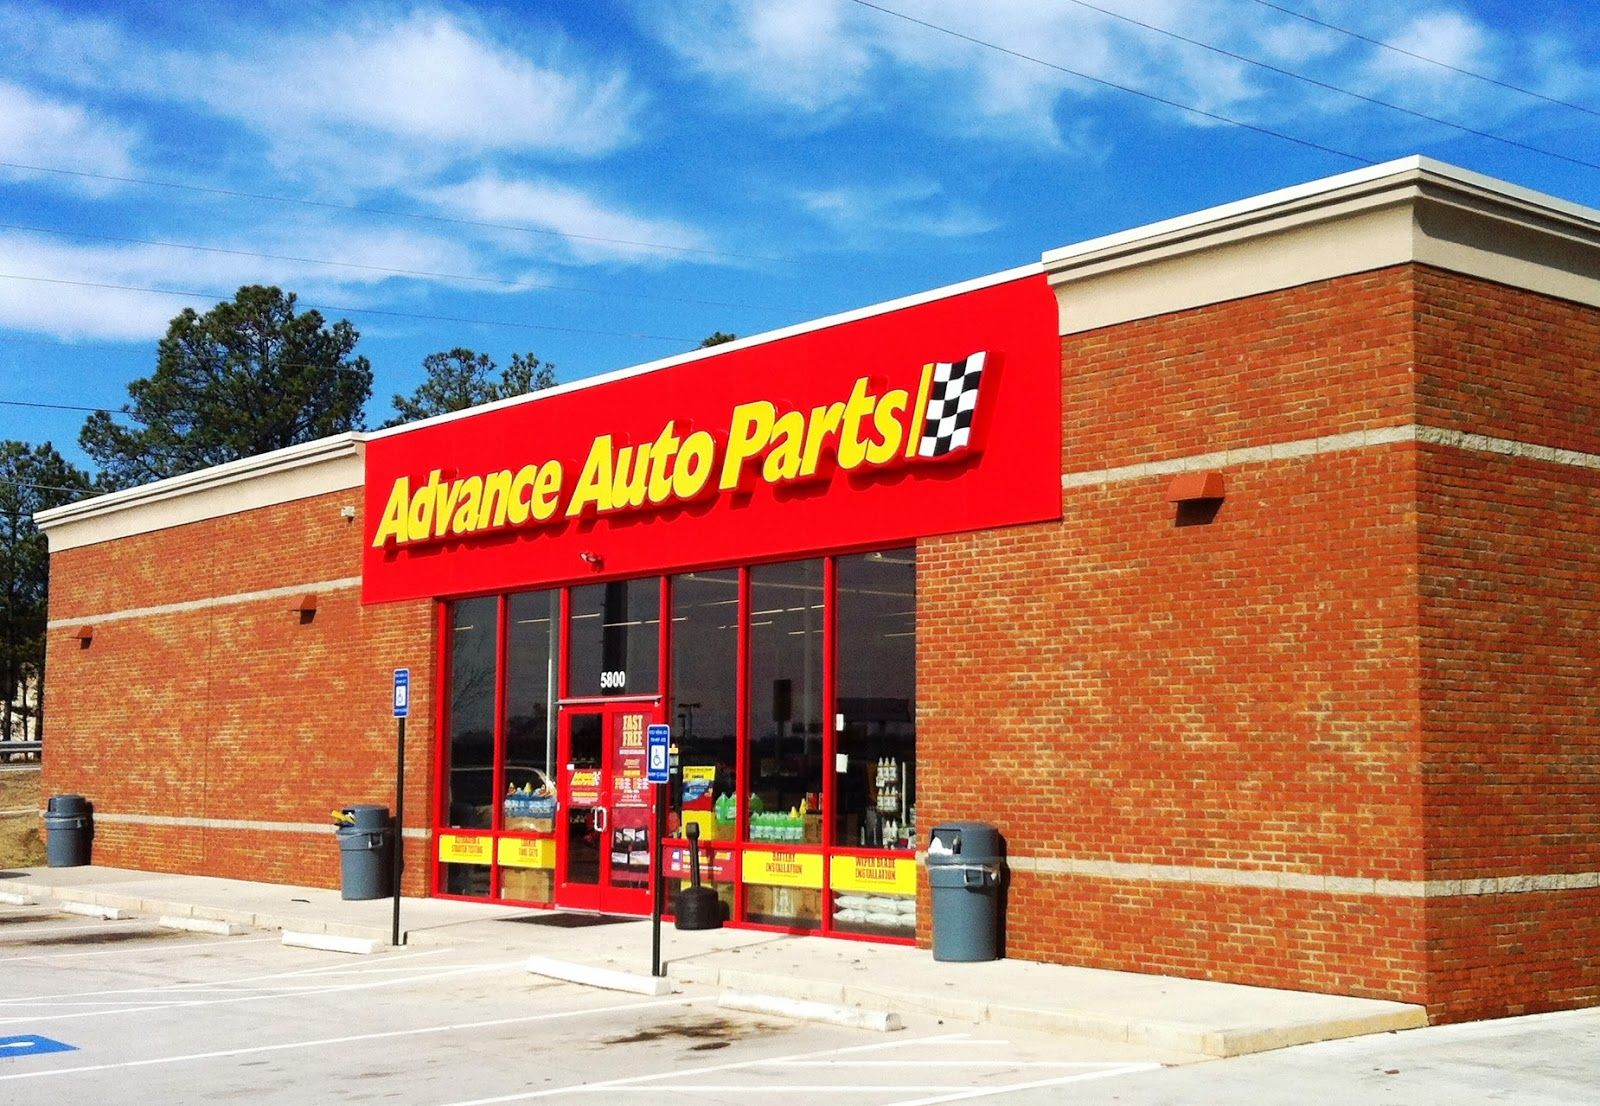 Carquest is now part of the Advance Auto Parts family. Carquest and Advance Auto Parts have joined forces to bring you an even better shopping experience. Carquest customers can now take advantage of all Advance online promotions, plus enjoy the convenience of ordering online and picking up at their nearest Carquest store, or shipping to home.